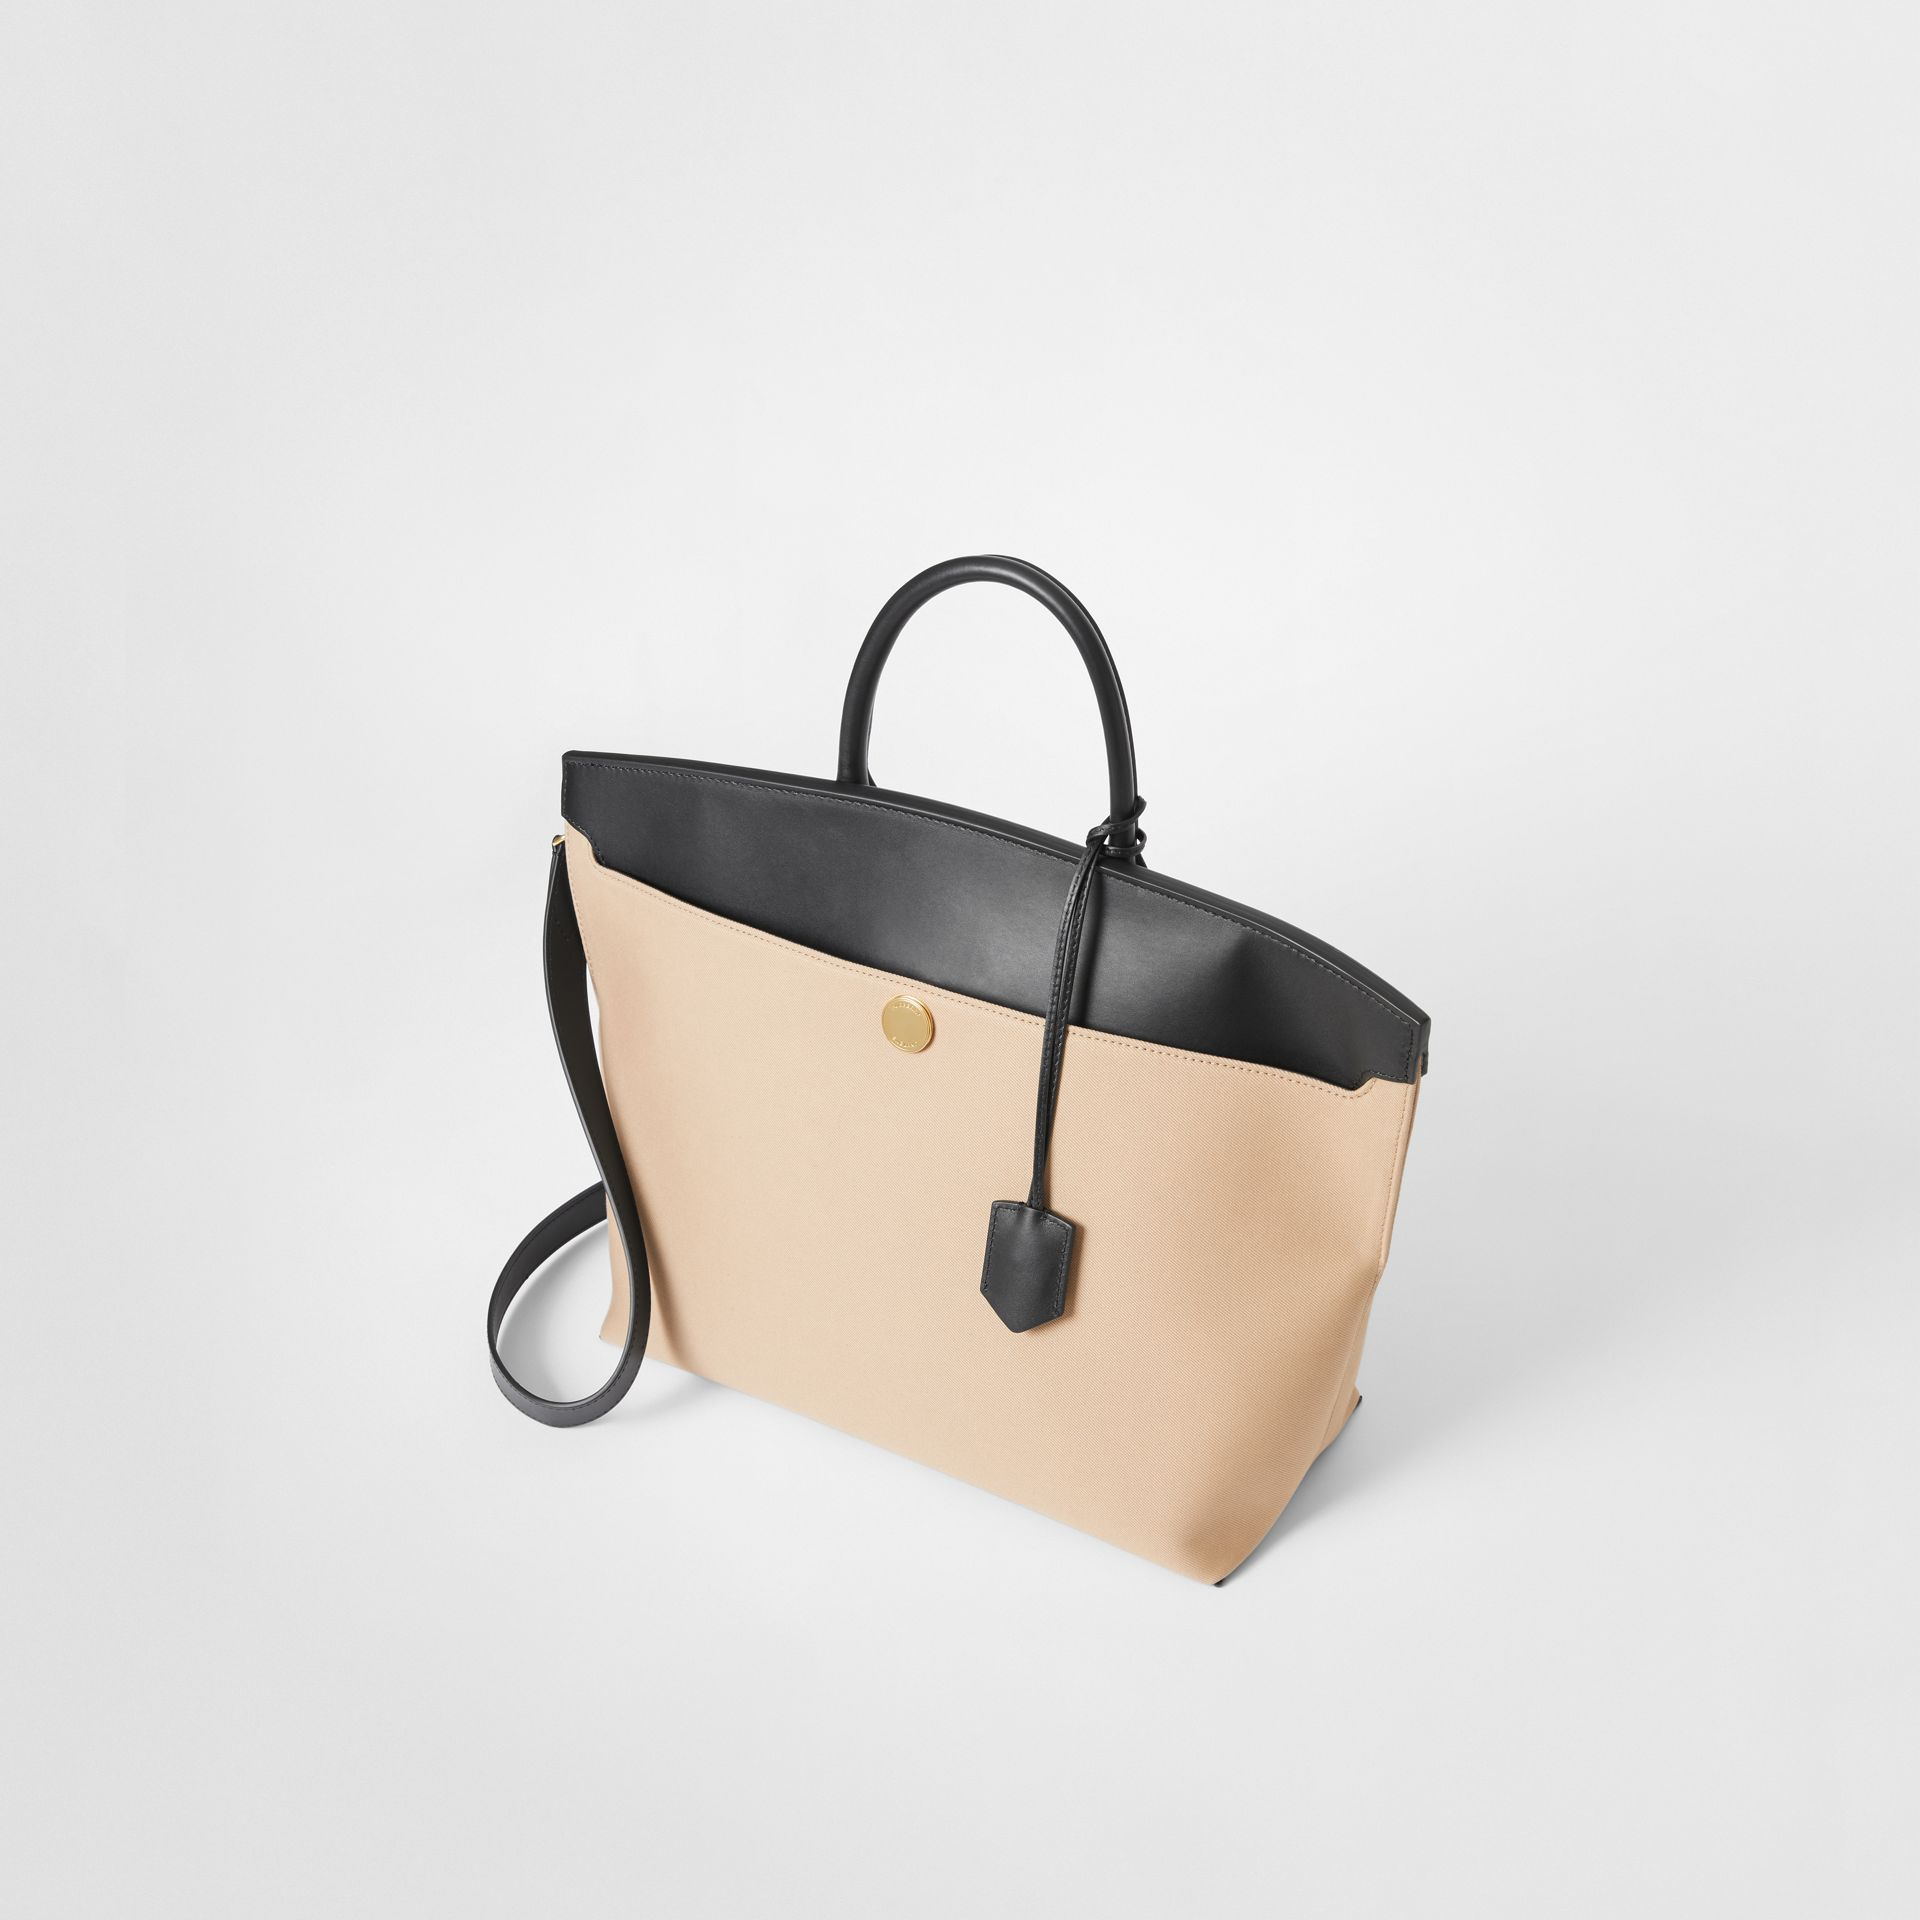 Cotton Canvas and Leather Society Top Handle Bag in Black/honey - Women | Burberry Singapore - gallery image 3